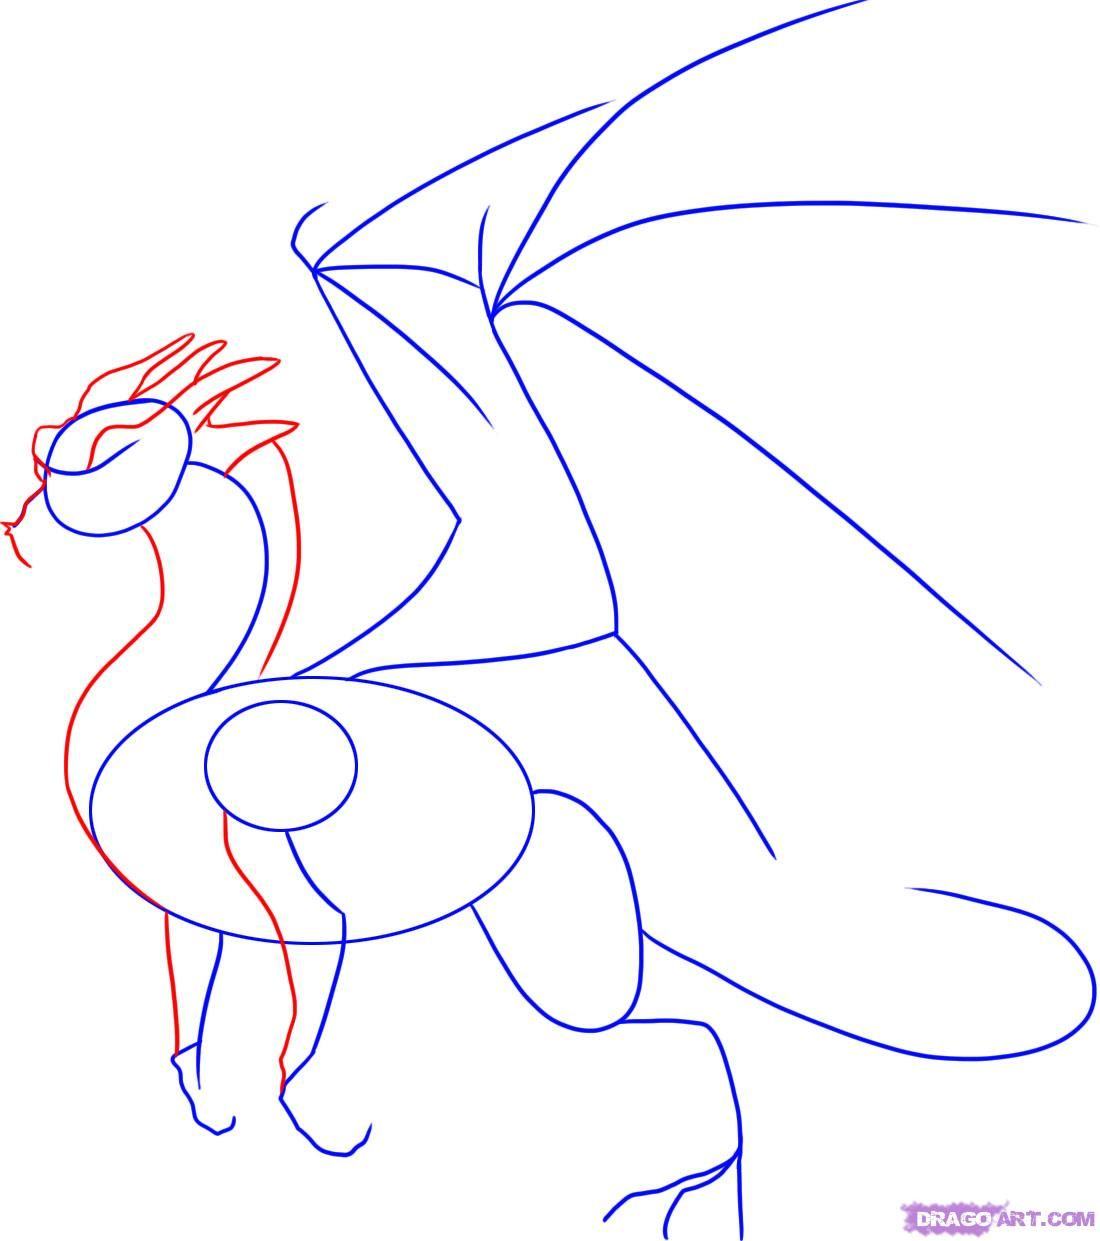 how to draw the head of a dragon step by step 3